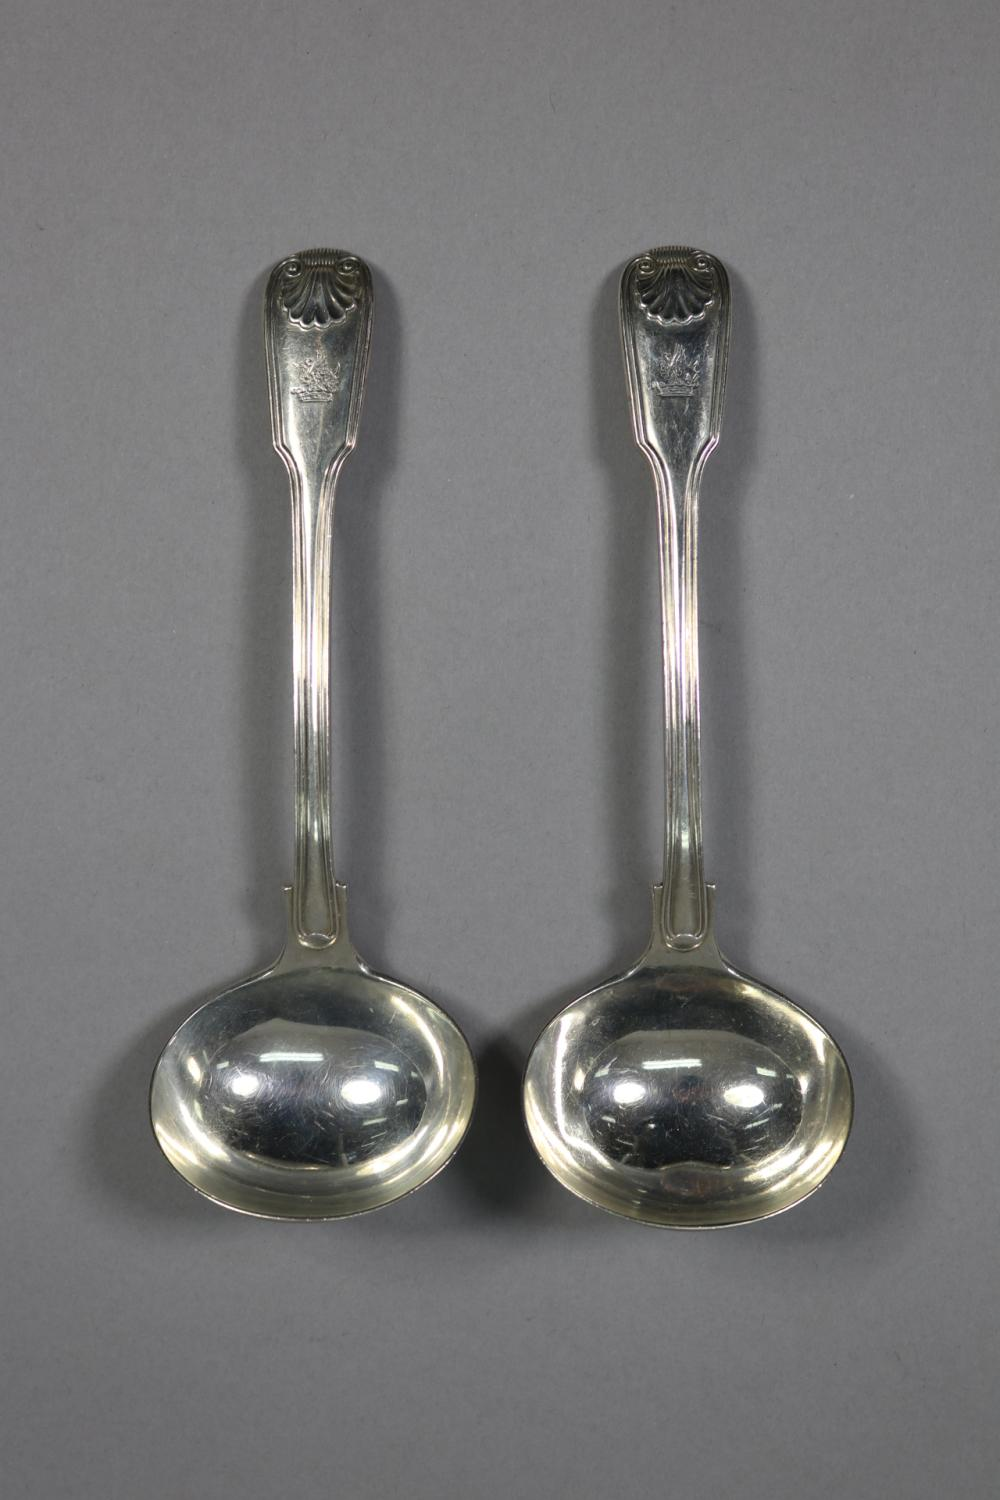 Pair of antique hallmarked sterling silver Fiddle, Thread and Shell pattern ladles, London, 1860 - 1861, George Adams, approx 165 grams (2)